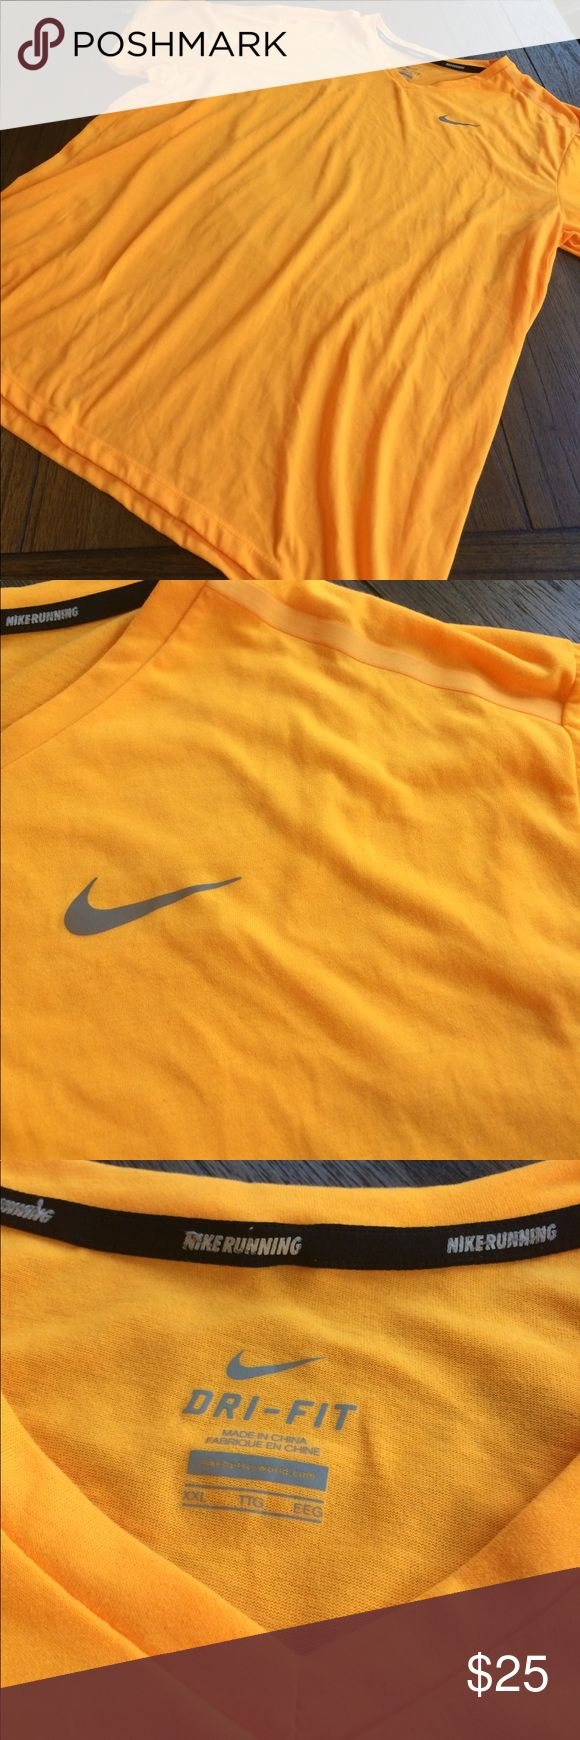 Nike Running Shirt Gently used Nike Running Short Sleeved Shirt. Bright almost neon tangerine color. Stow pocket on back for key when out for a run. Dri-Fit technology wicks away moisture to keep dry. Nike Shirts Tees - Short Sleeve